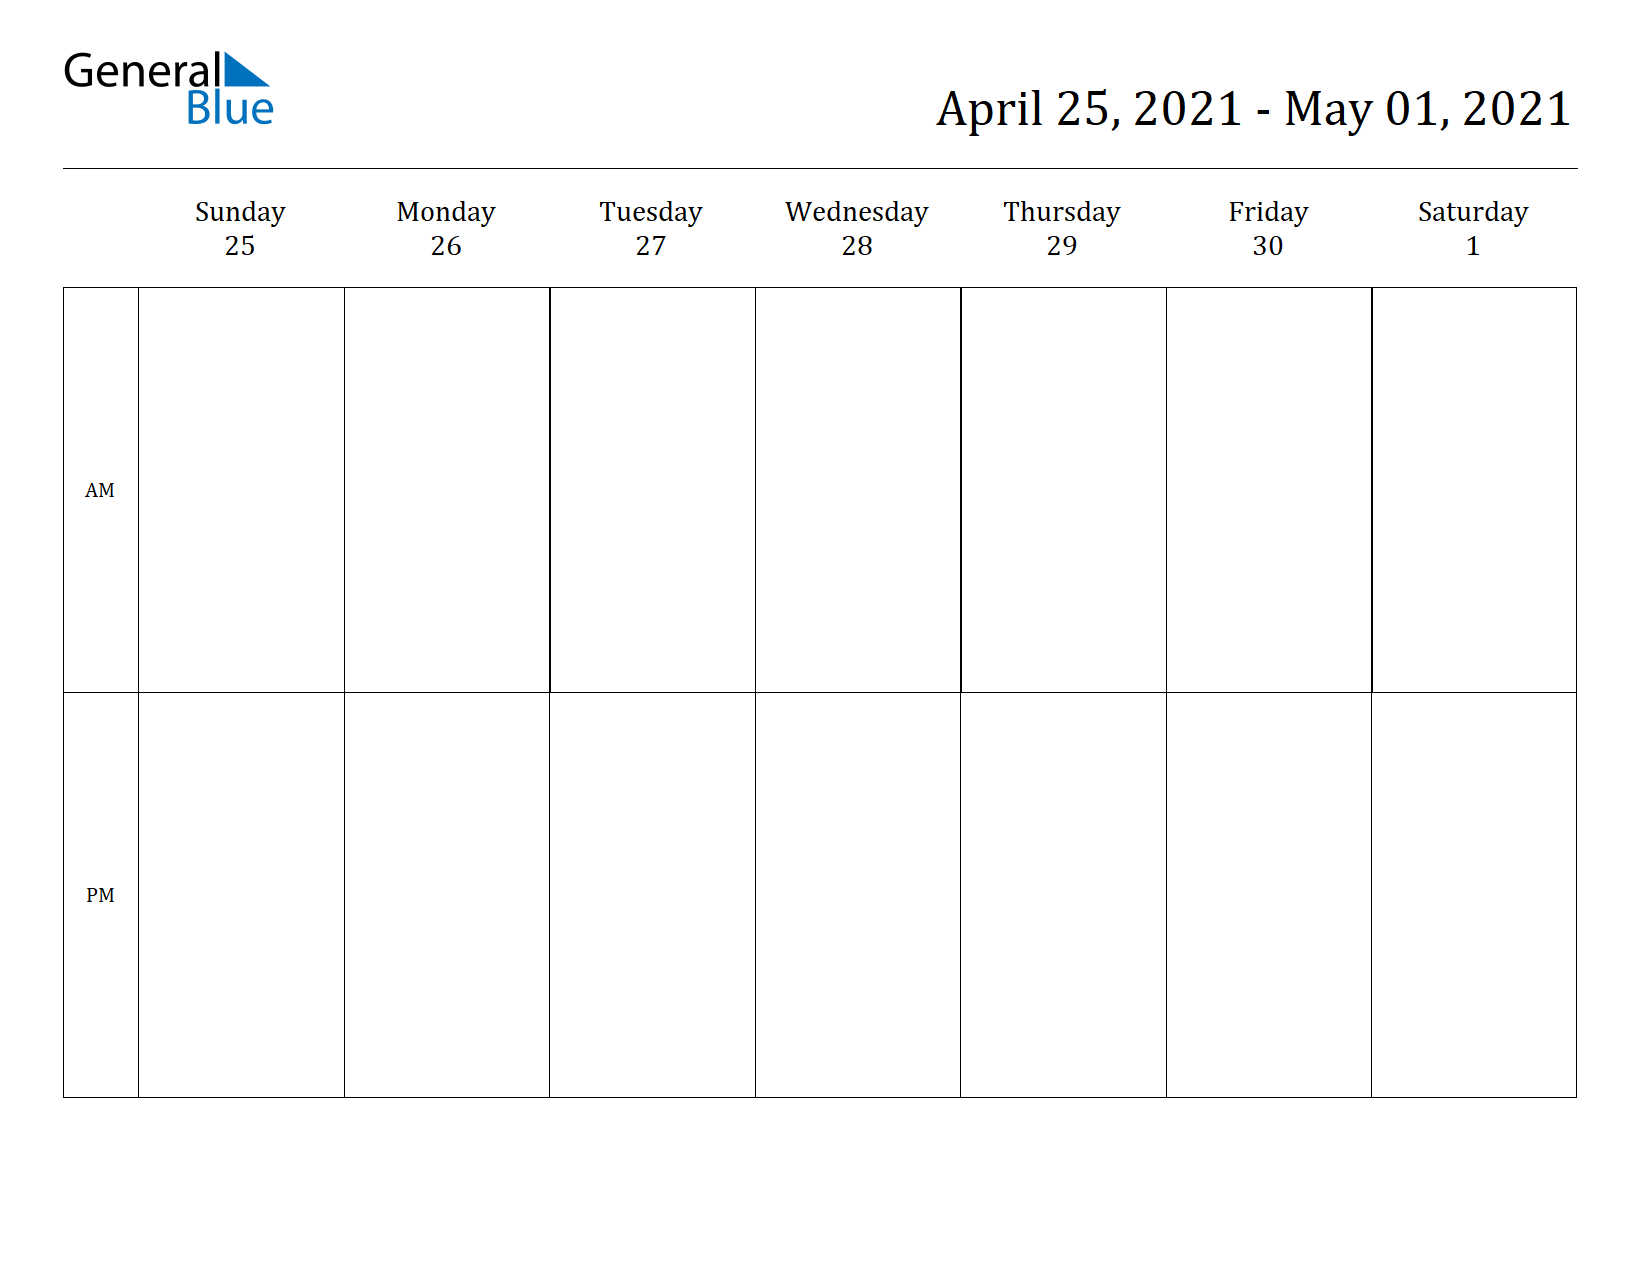 Weekly Calendar for Apr 25, 2021 to May 01, 2021